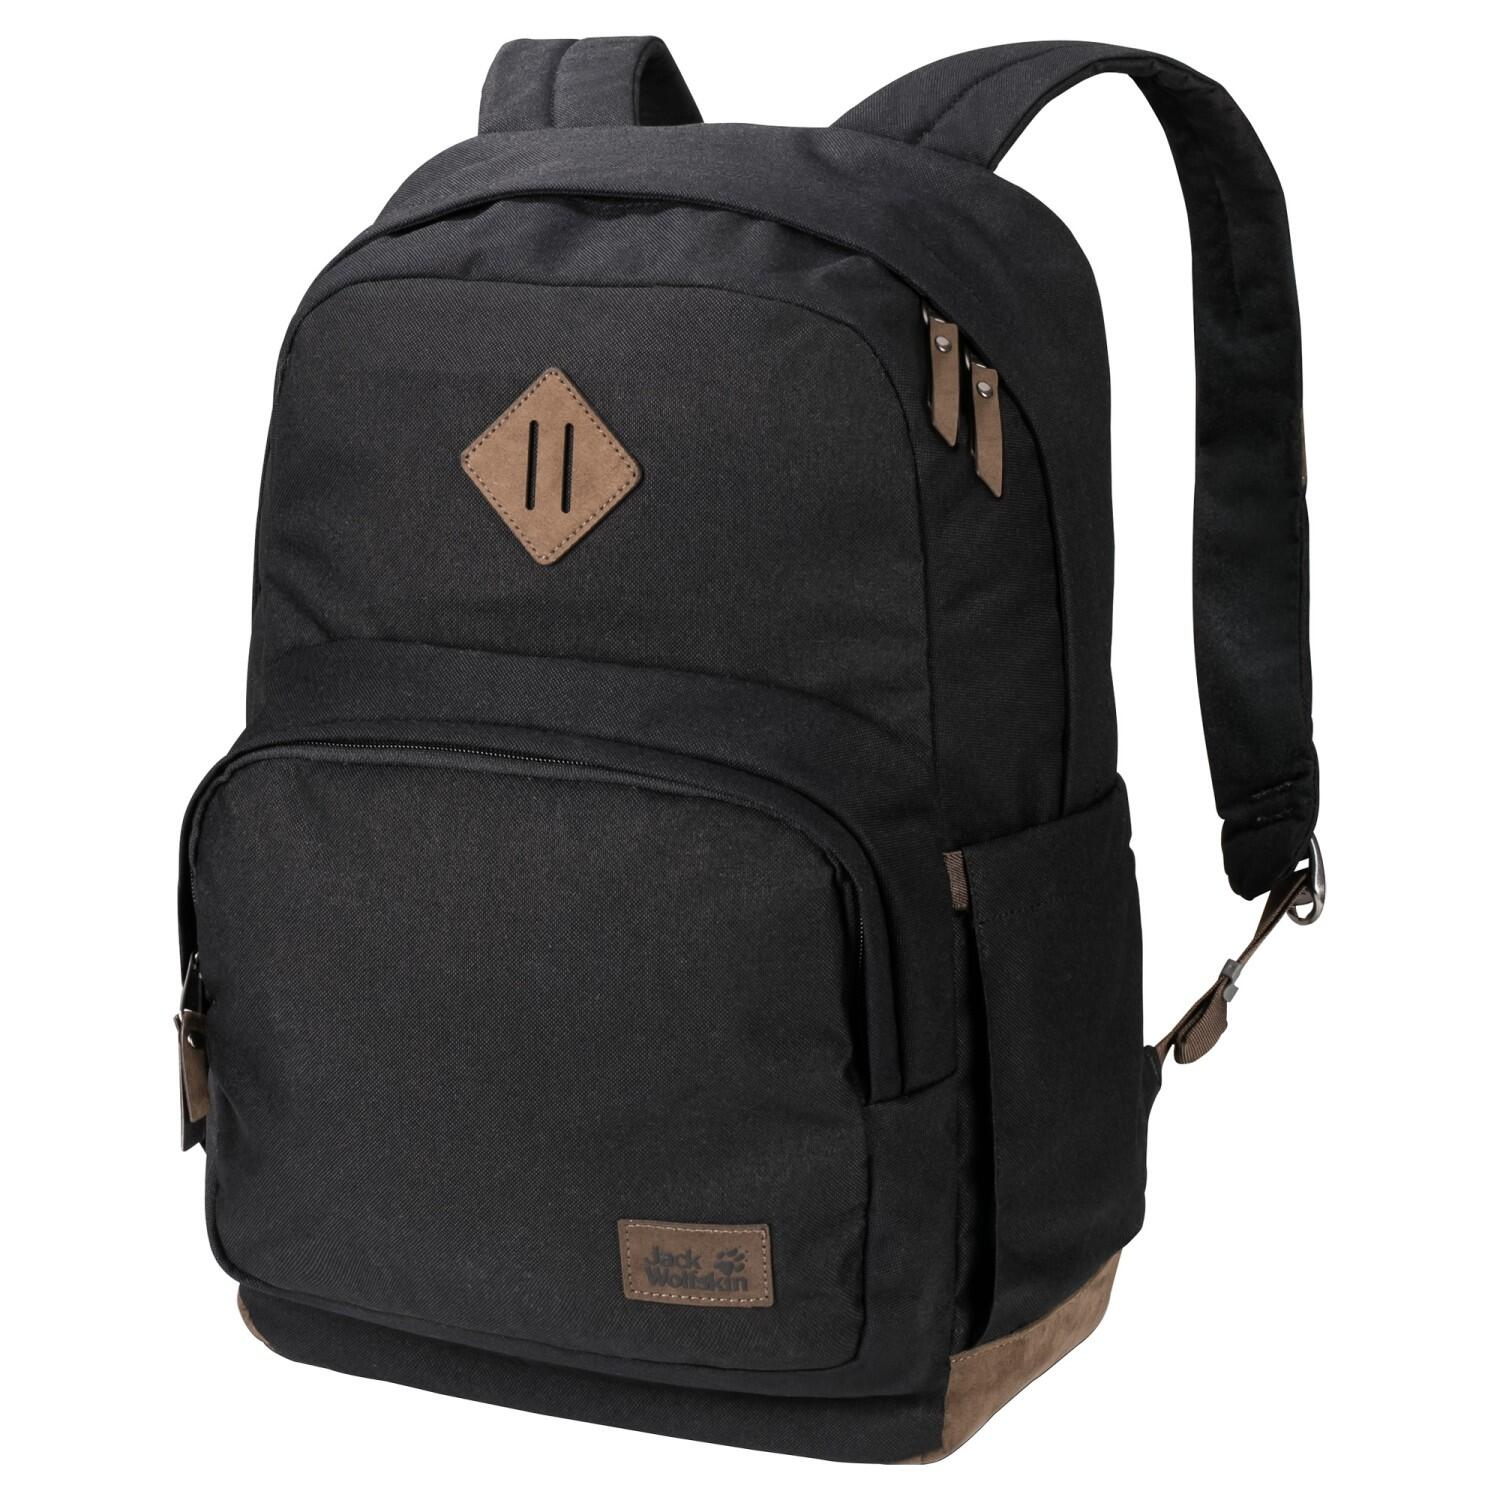 jack-wolfskin-croxley-tagesrucksack-farbe-6000-black-